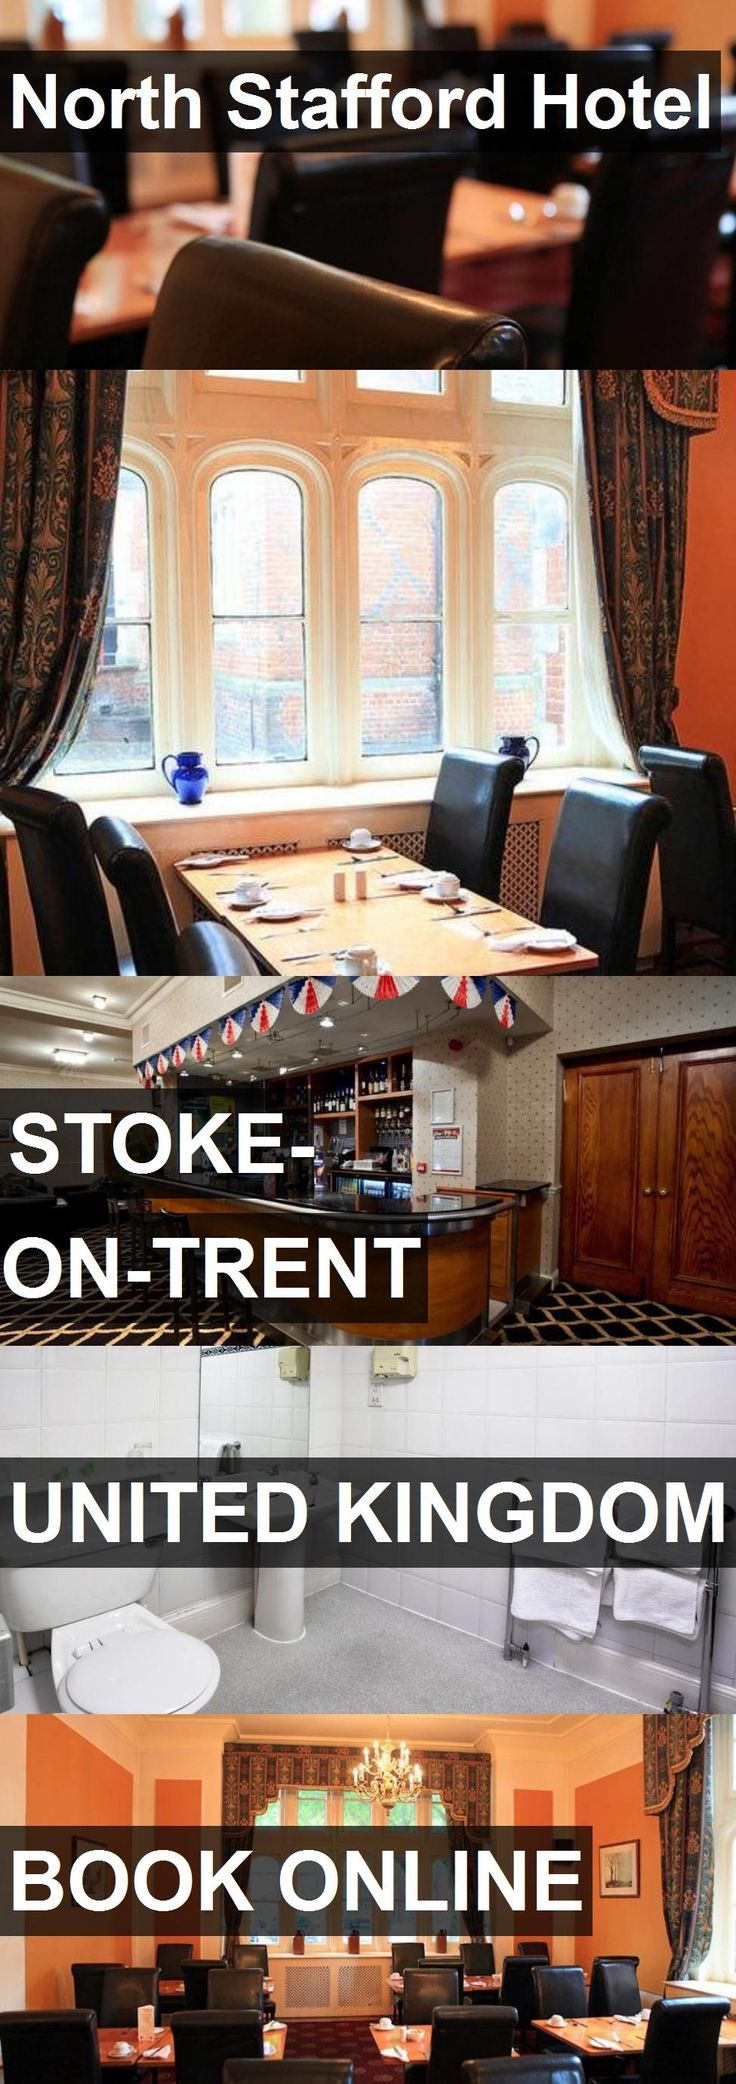 North Stafford Hotel in Stoke-On-Trent, United Kingdom. For more information, photos, reviews and best prices please follow the link. #UnitedKingdom #Stoke-On-Trent #travel #vacation #hotel